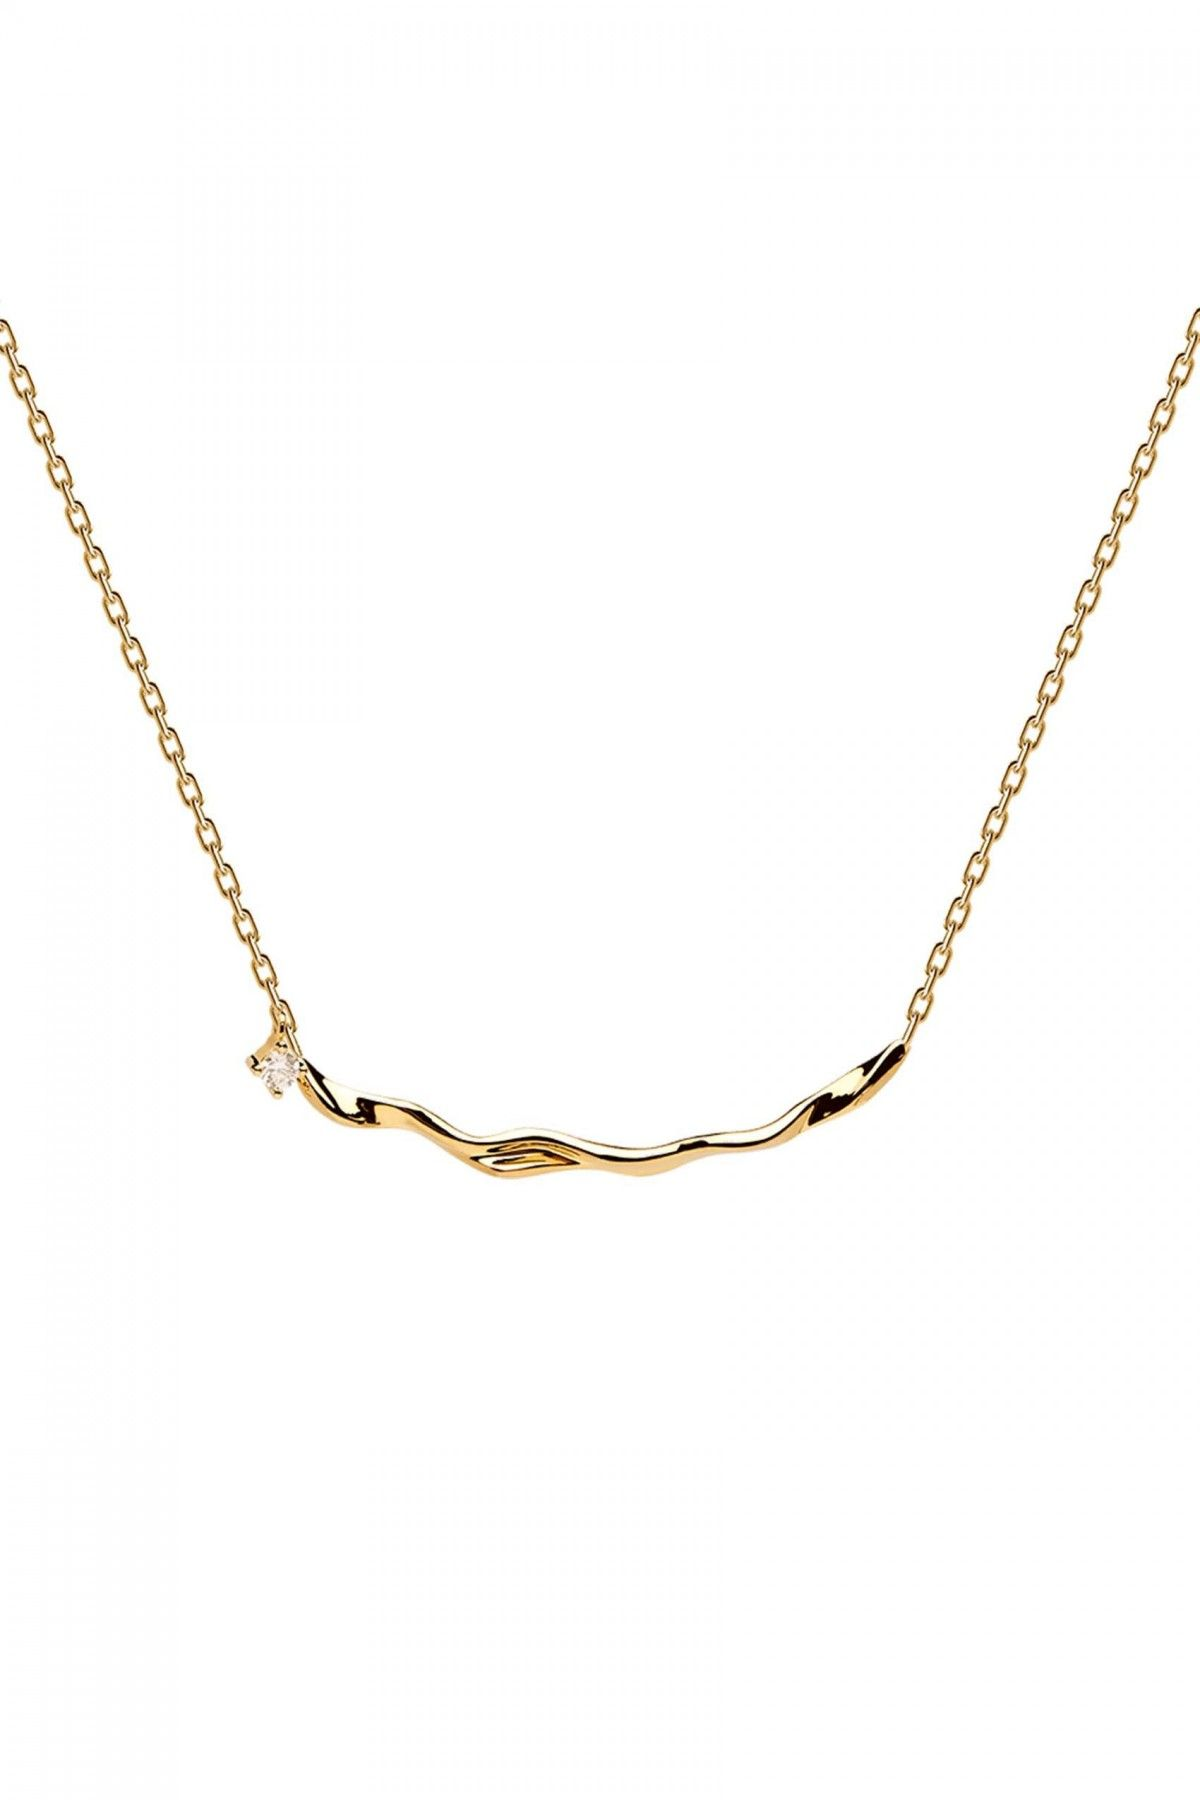 HARU GOLD NECKLACE